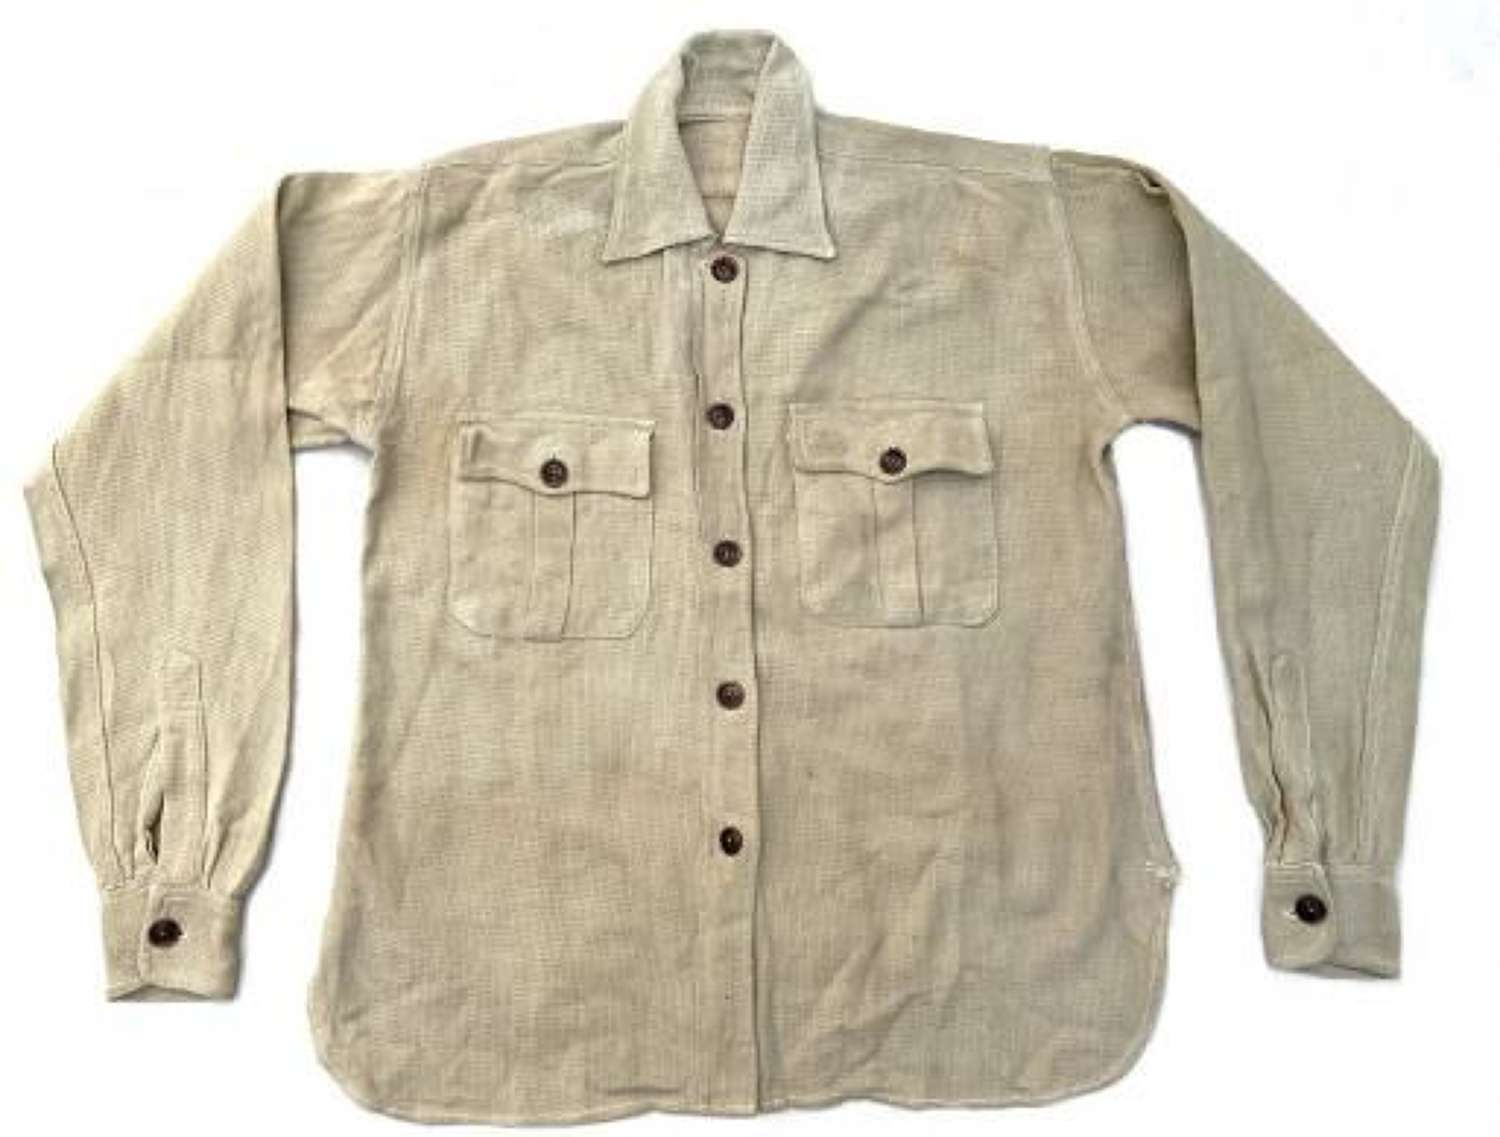 Rare Early War ATS Khaki Drill 'Aertex' Blouse